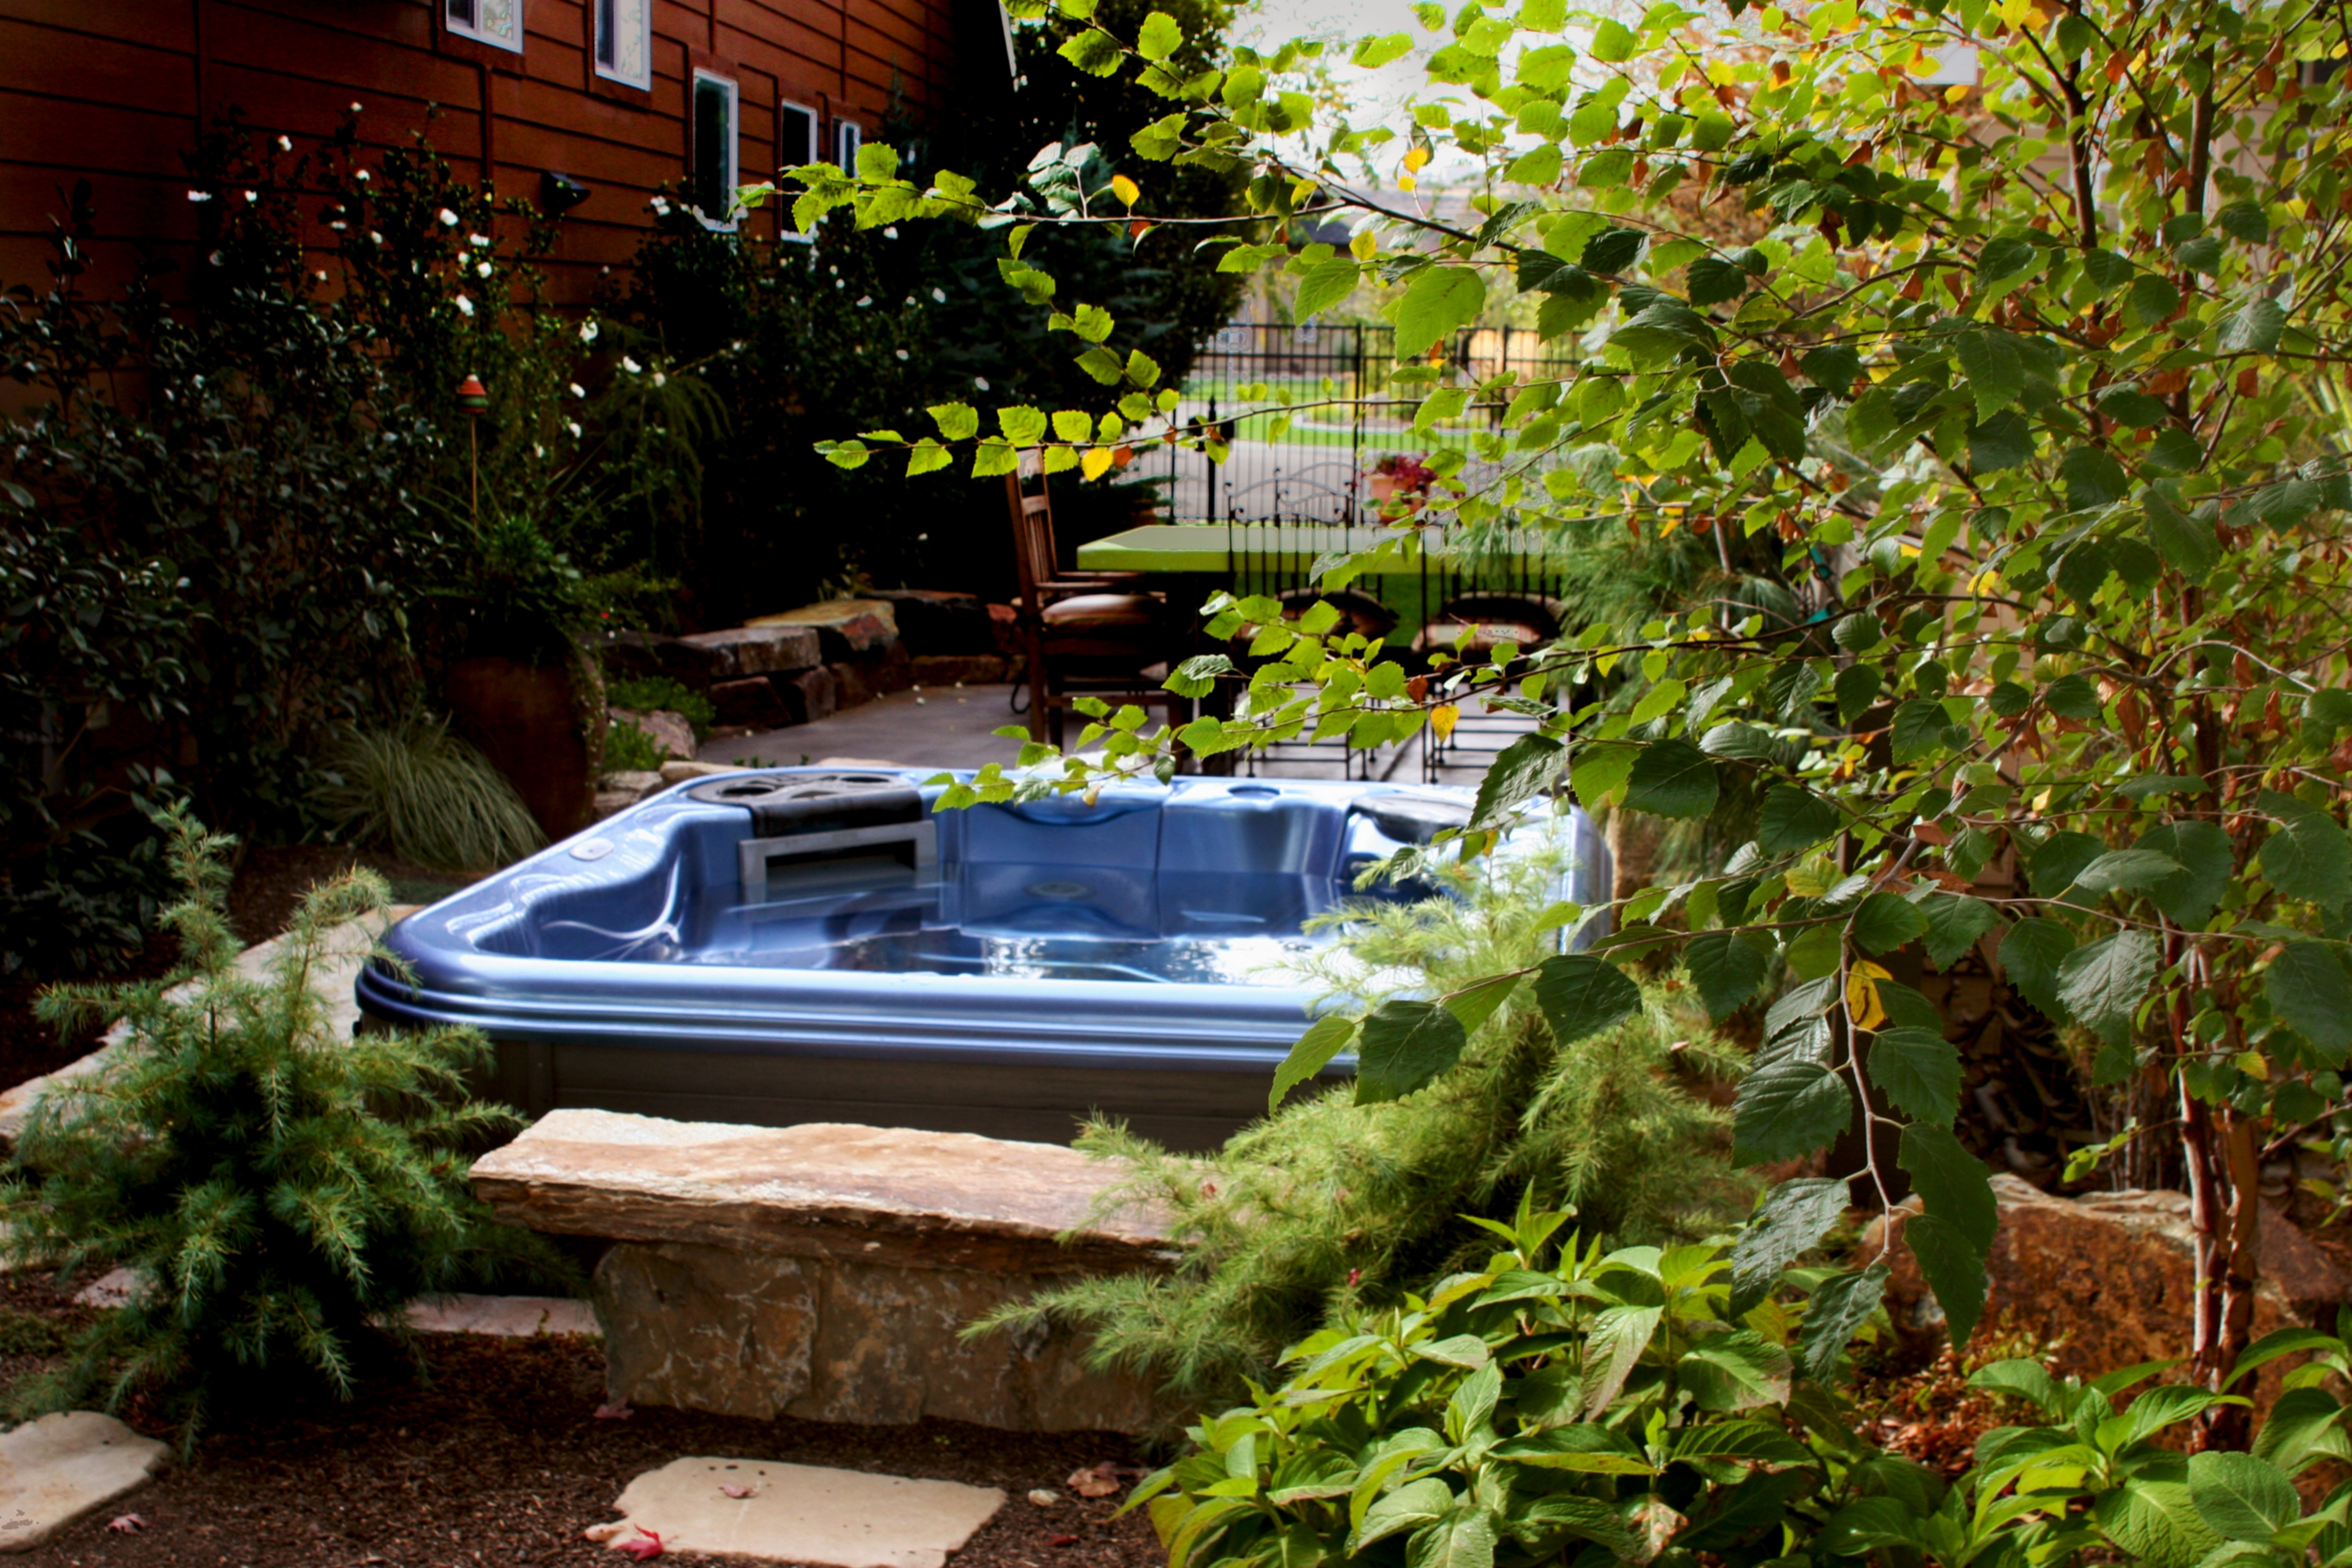 Intimate Spa Backyard Sanctuary - 1 | The Garden Artist Boise, ID